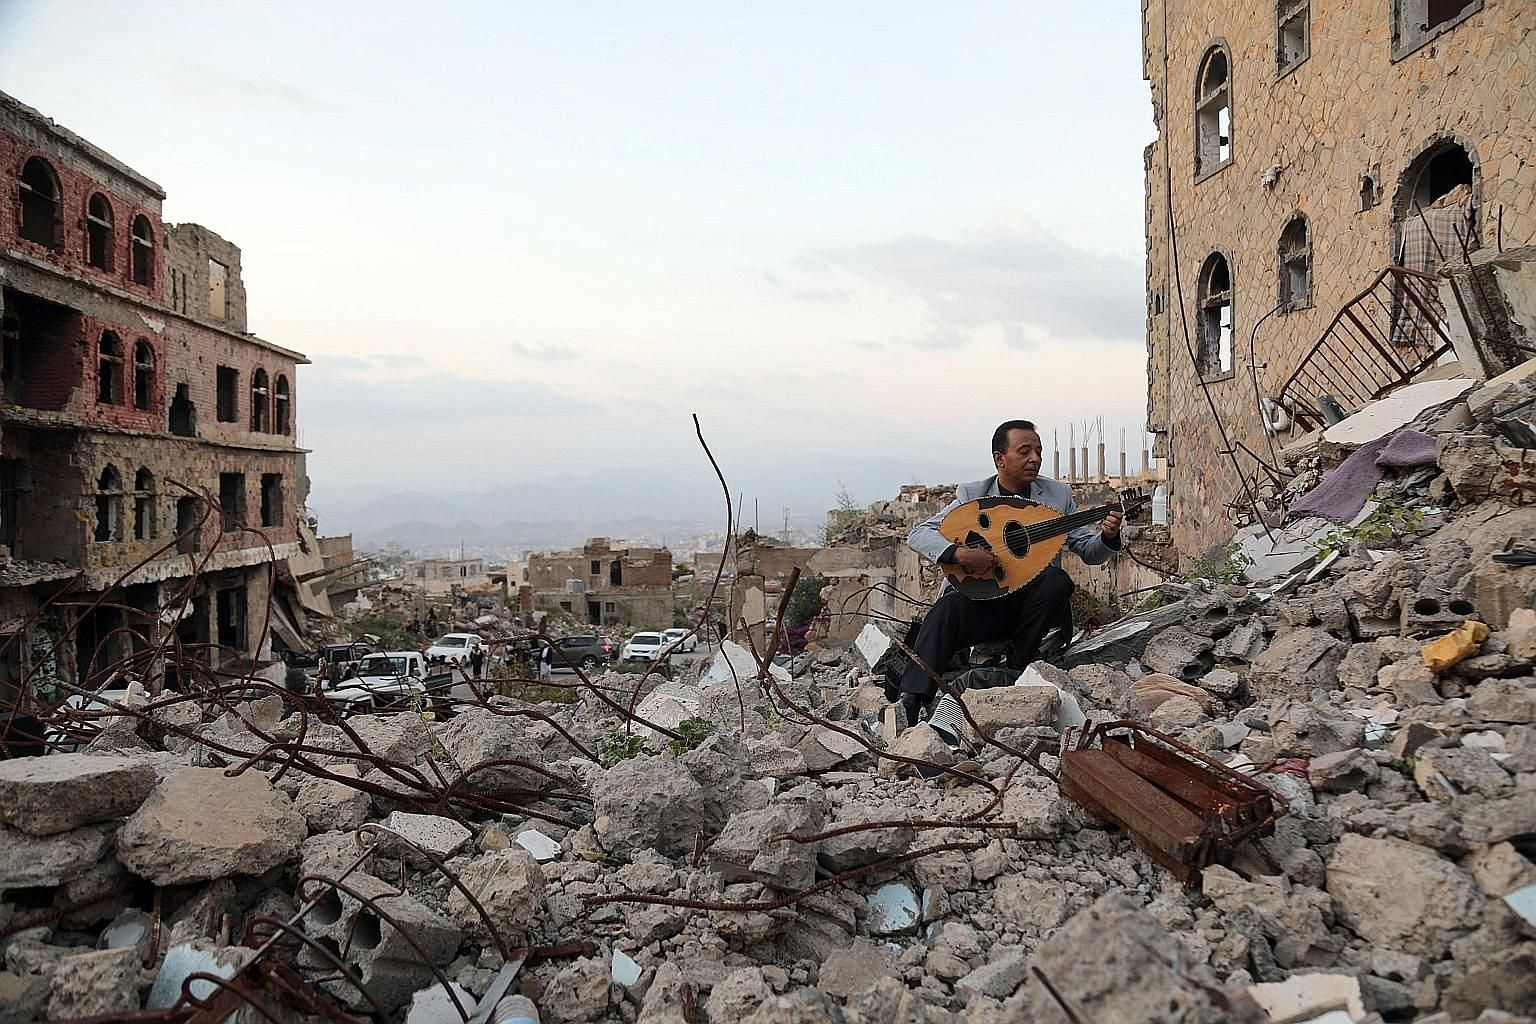 A man playing the oud amid rubble in the Yemeni city of Taez. Five years after launching its military intervention in Yemen, Saudi Arabia has failed to uproot Iran-backed Houthi rebels from their northern strongholds.